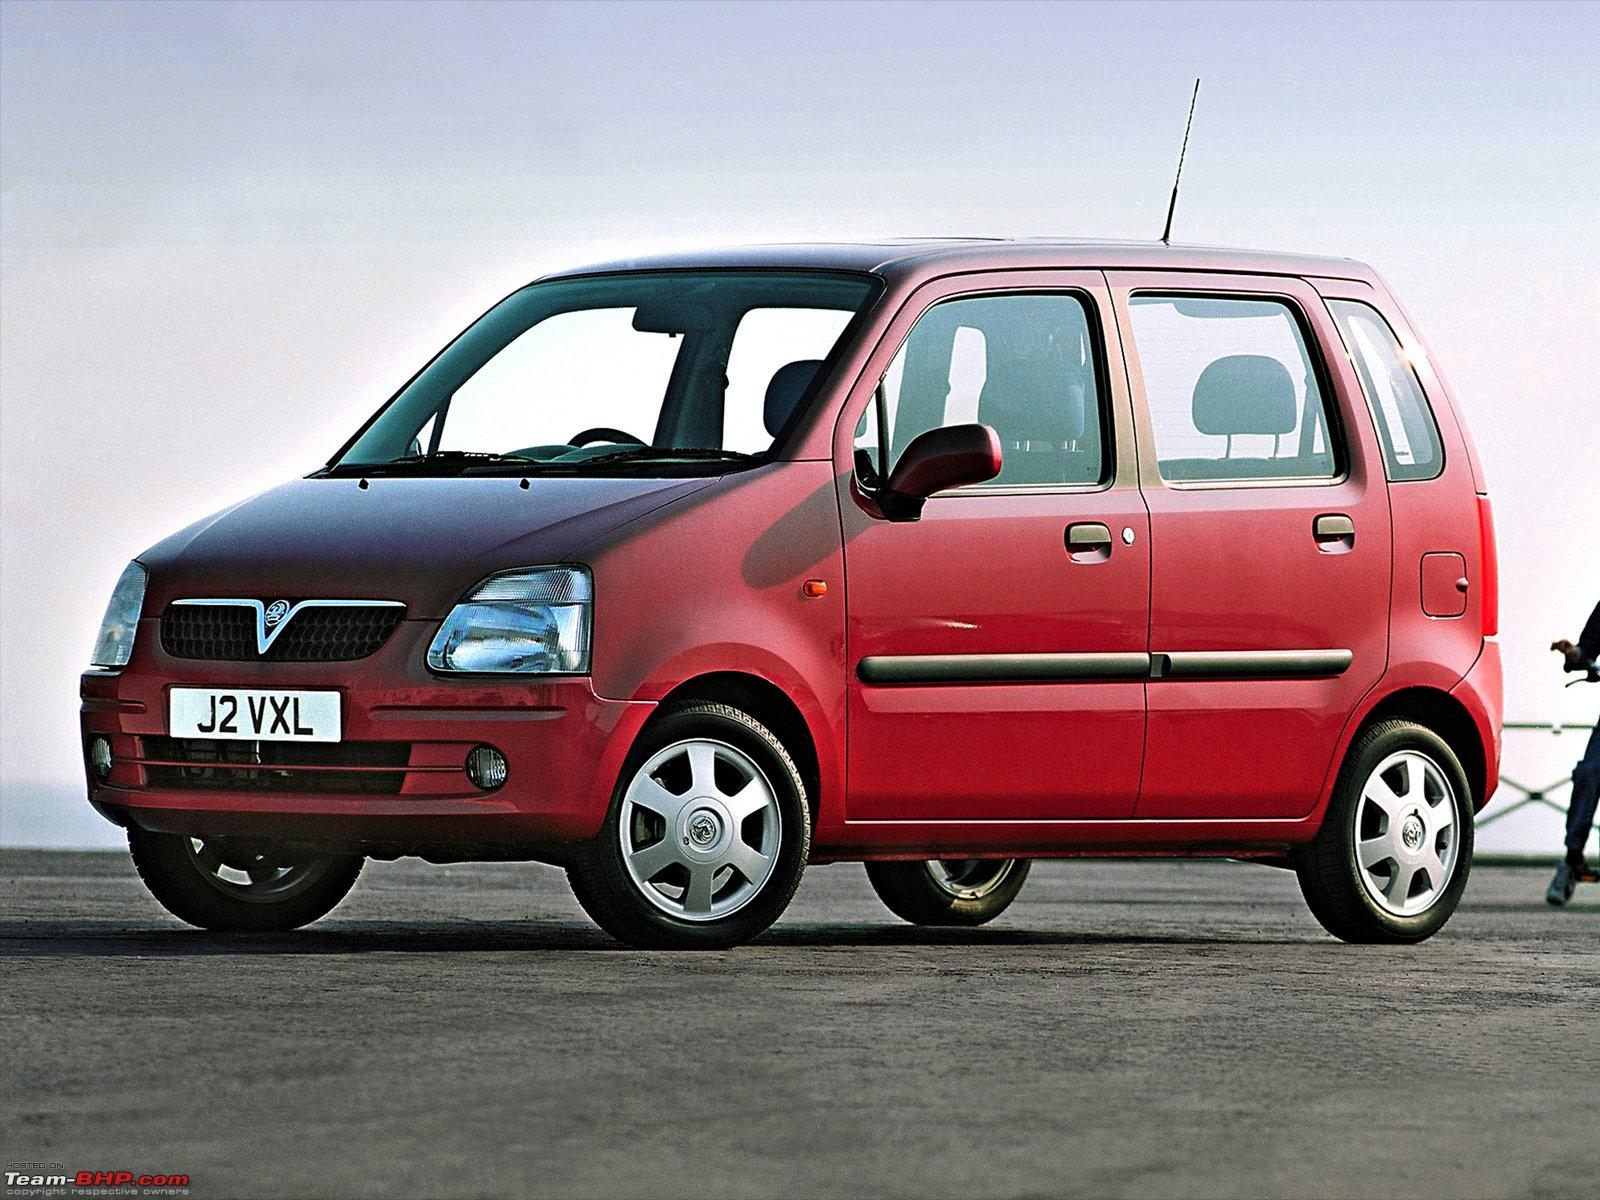 Vauxhall Agila Cars Wallpaper